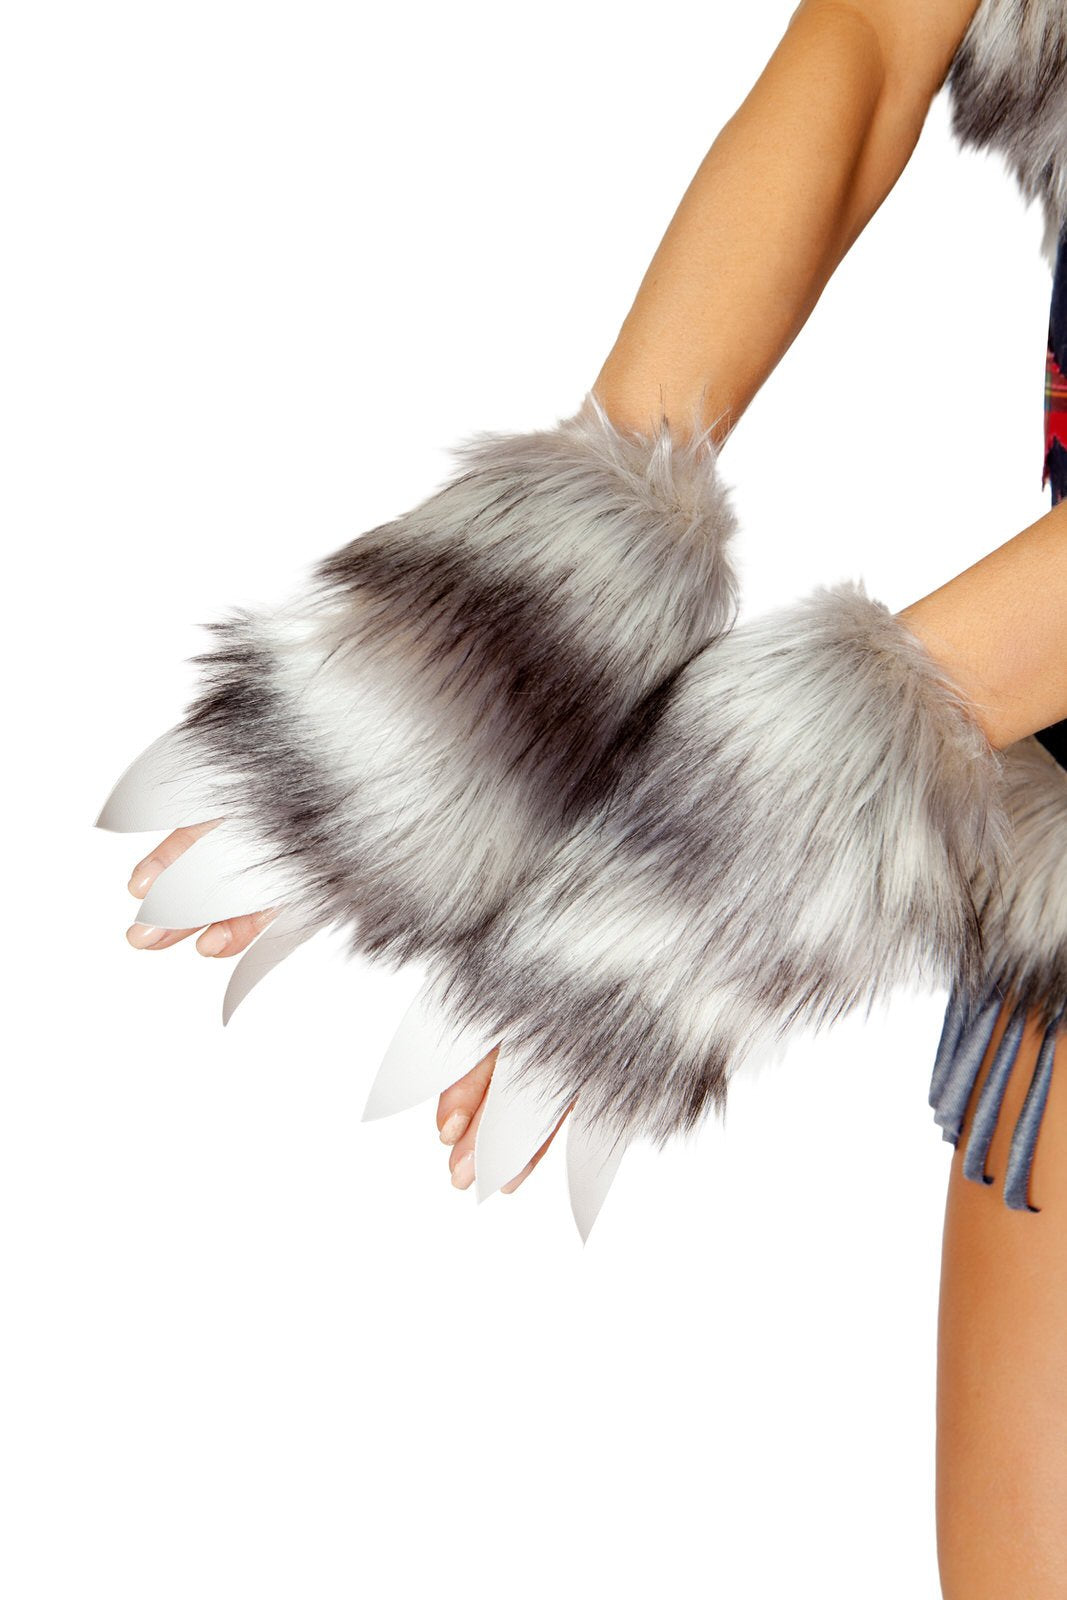 Buy Pair of Wolf Gloves from Rave Fix for $15.00 with Same Day Shipping Designed by Roma Costume 4806-Grey-O/S